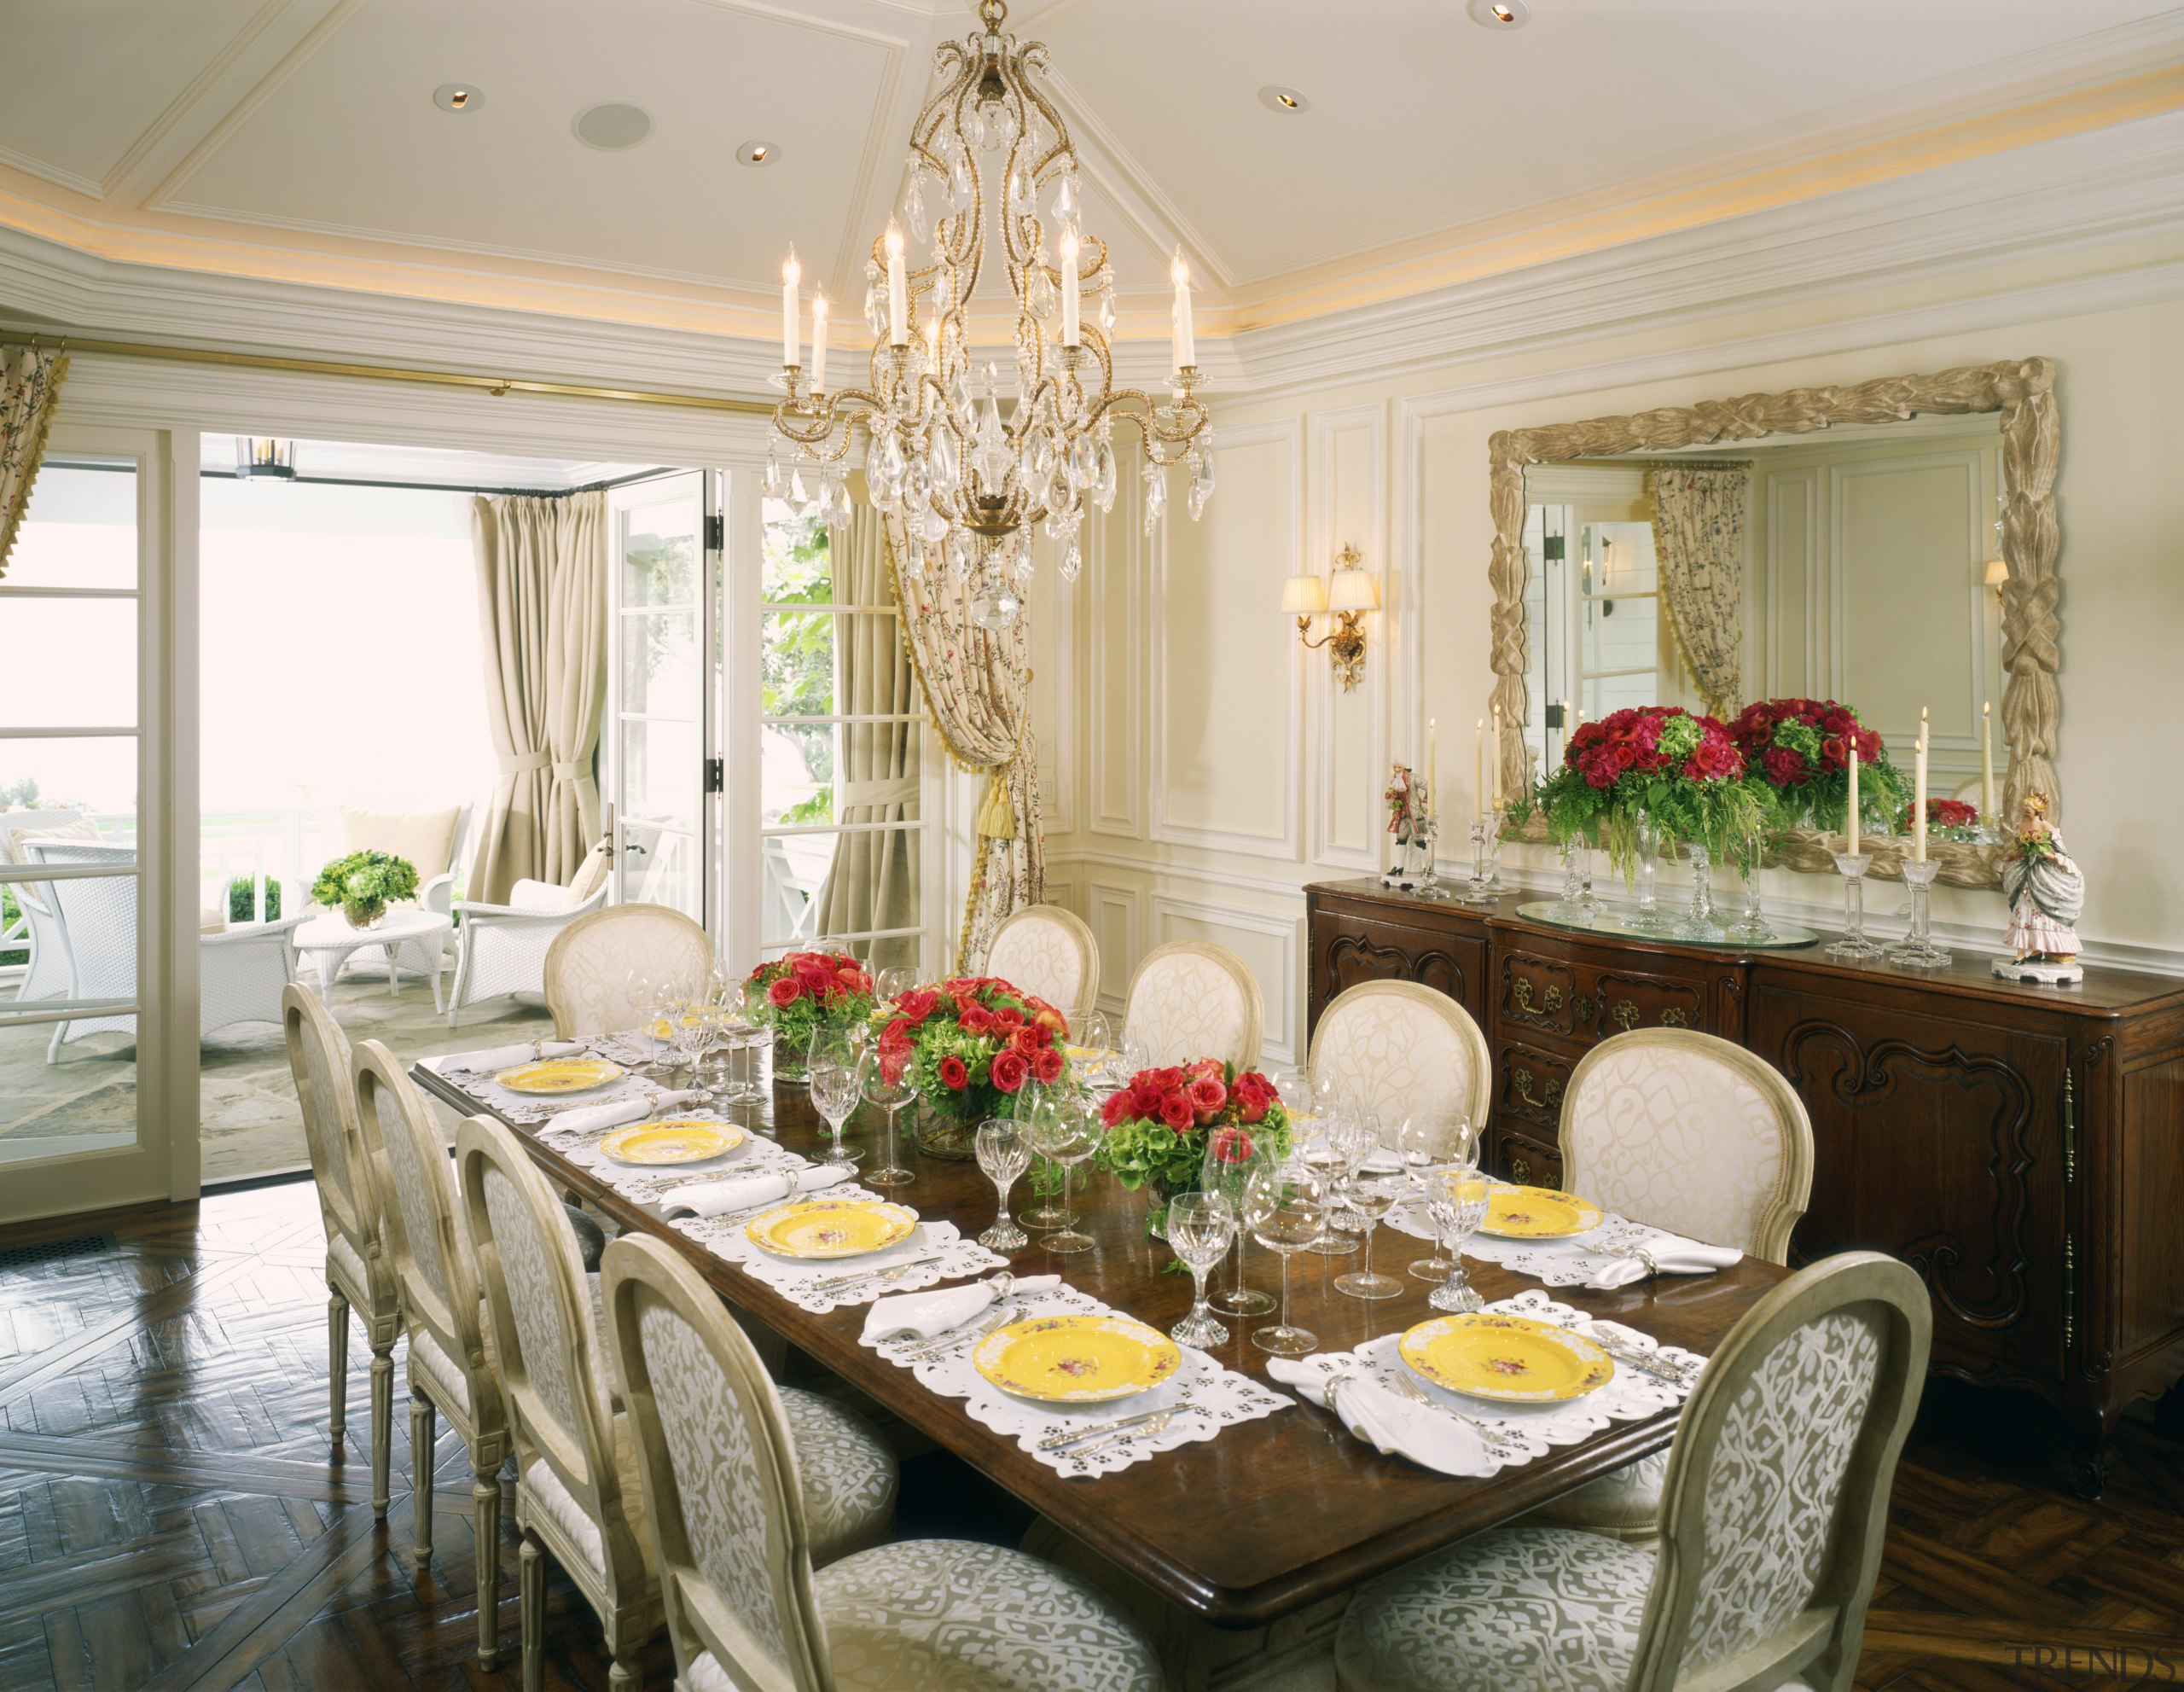 Dining room with chandelier & dining furniture overlooks dining room, function hall, home, interior design, room, table, gray